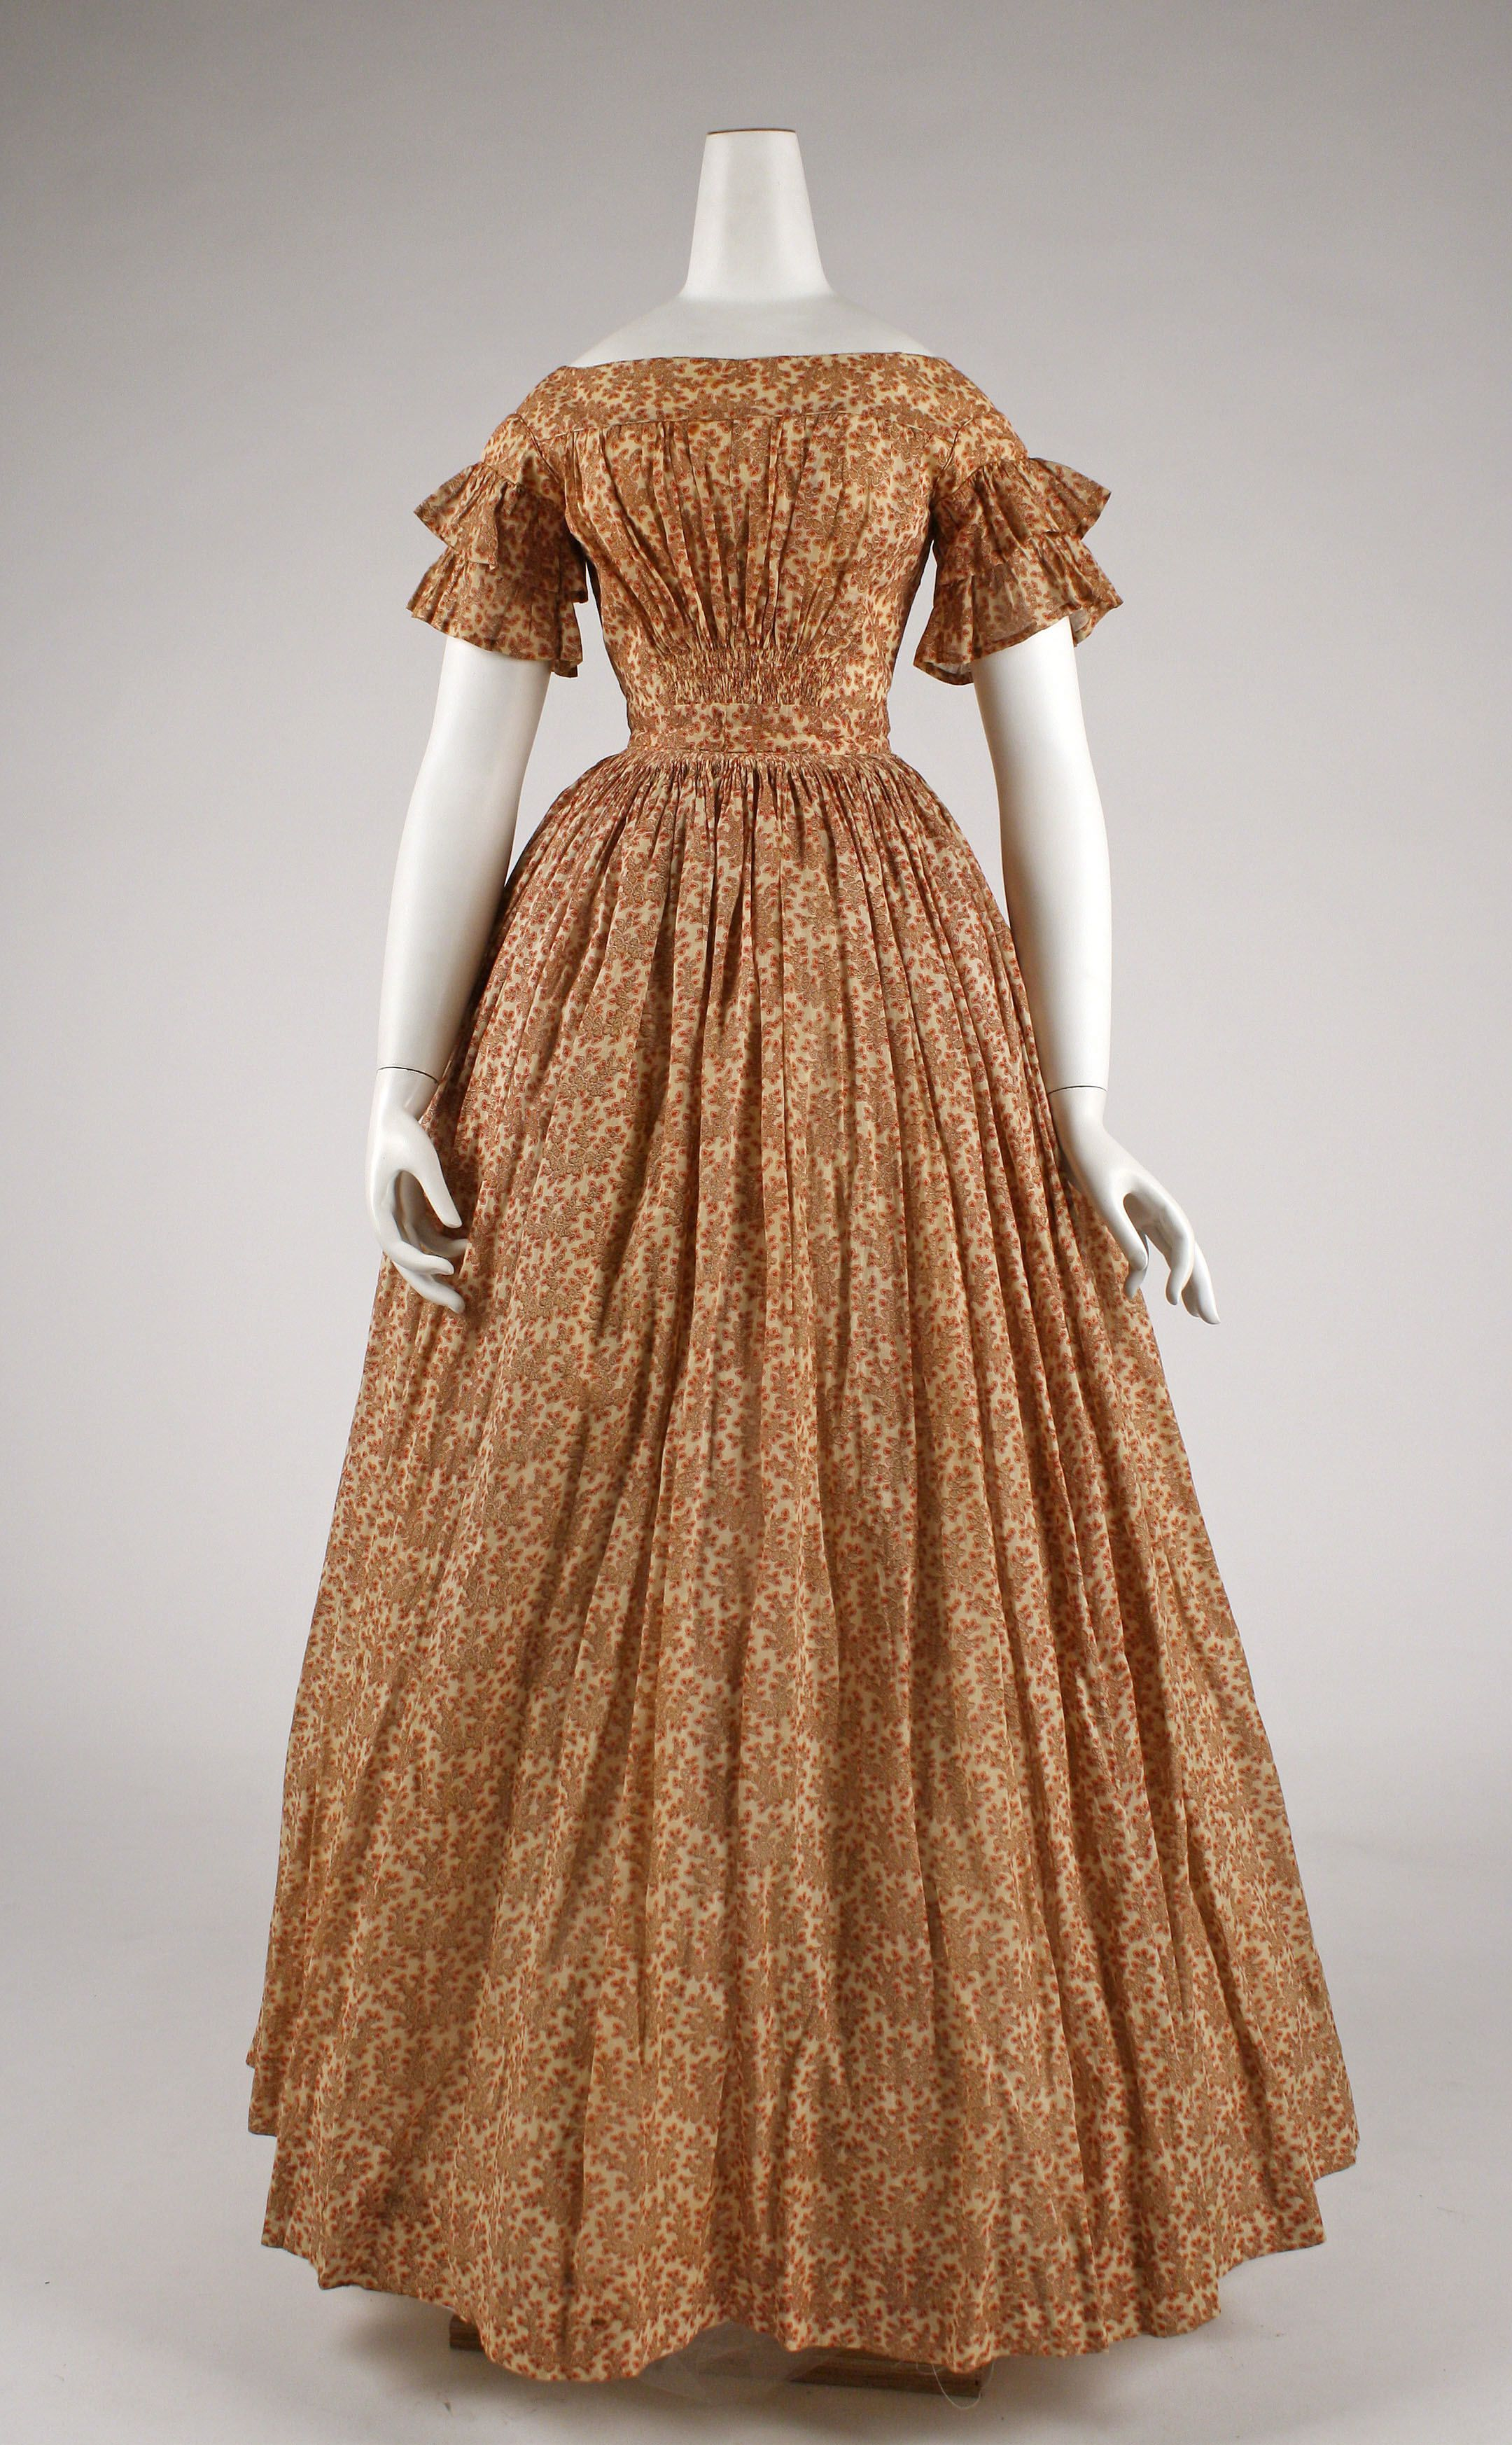 Dress, American, ca. 1843 | The Met